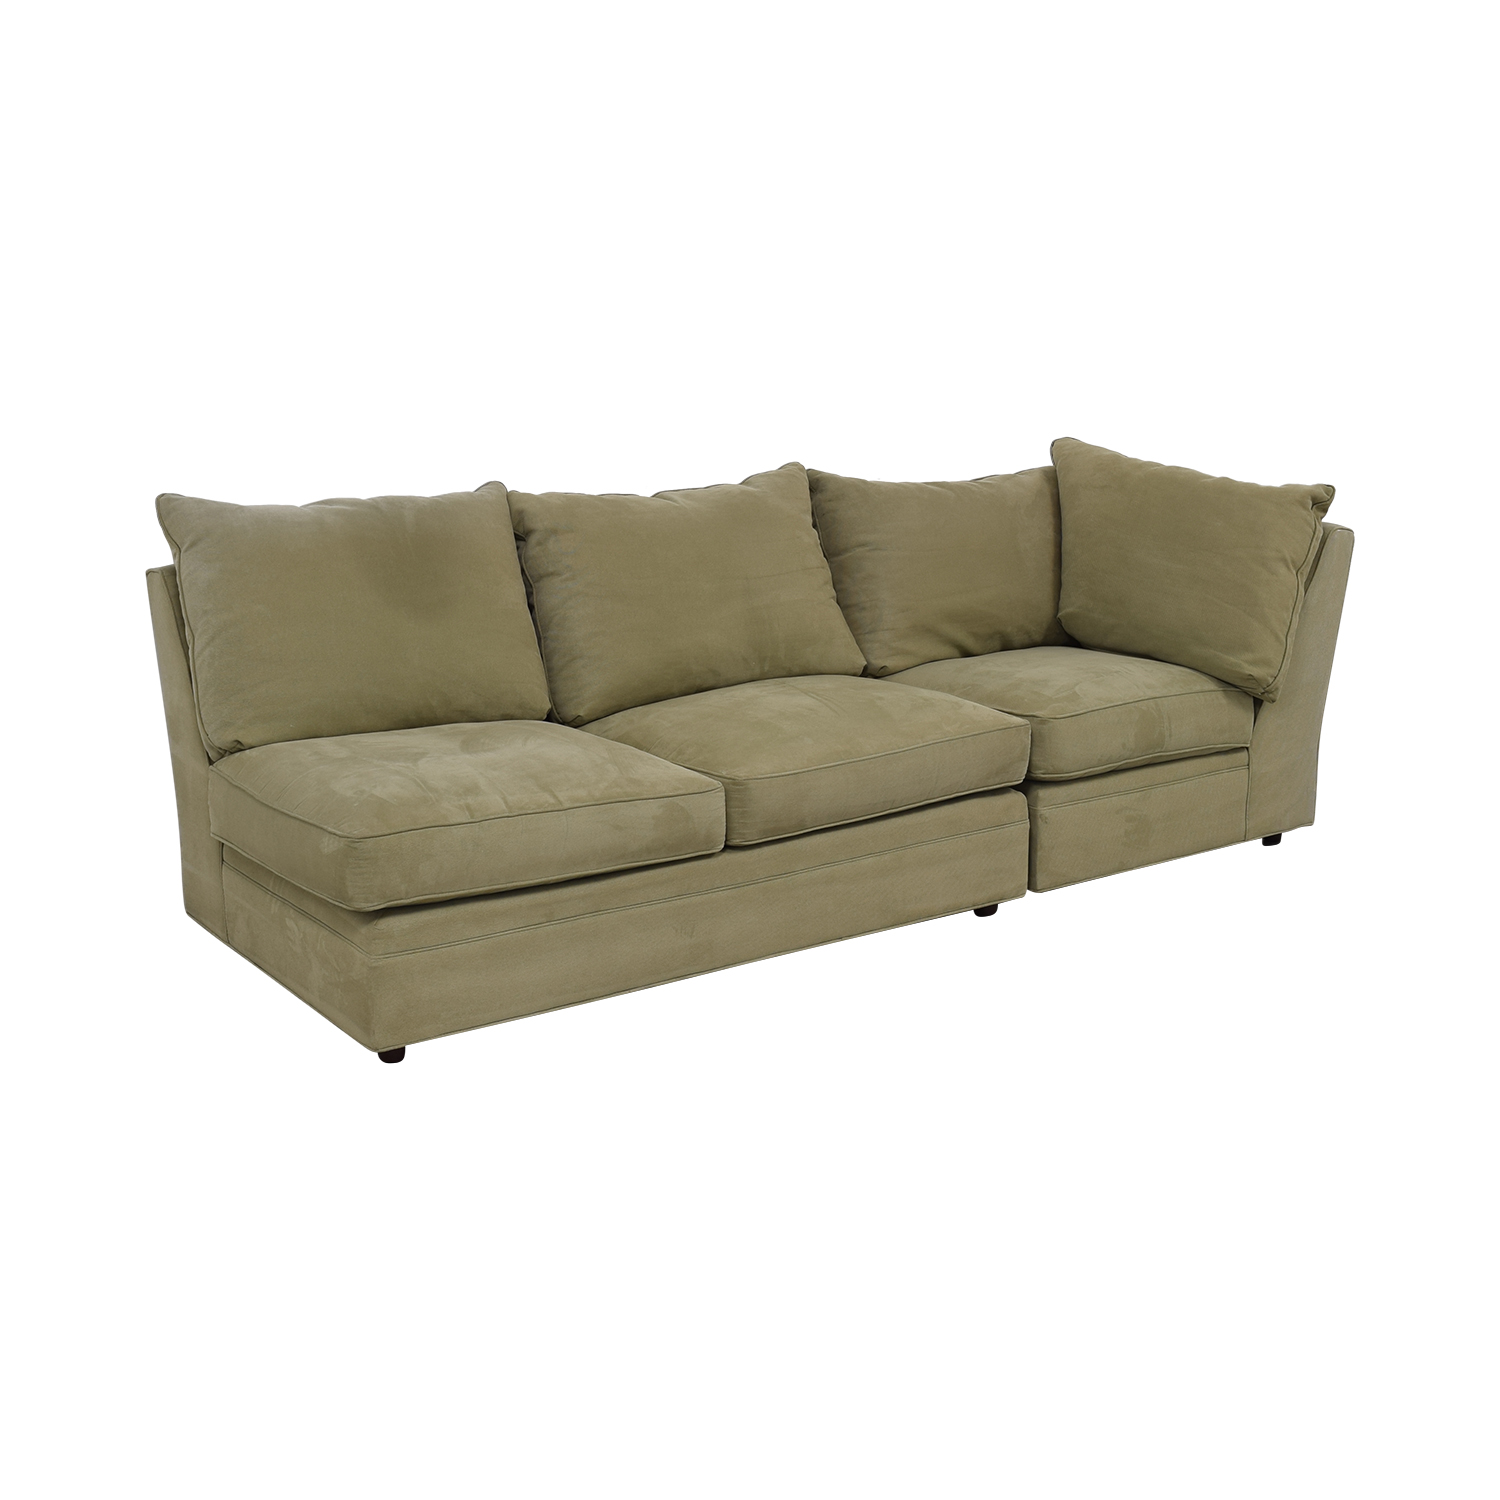 Macy's Macy's Beige Right Facing Arm Two-Piece Sofa used